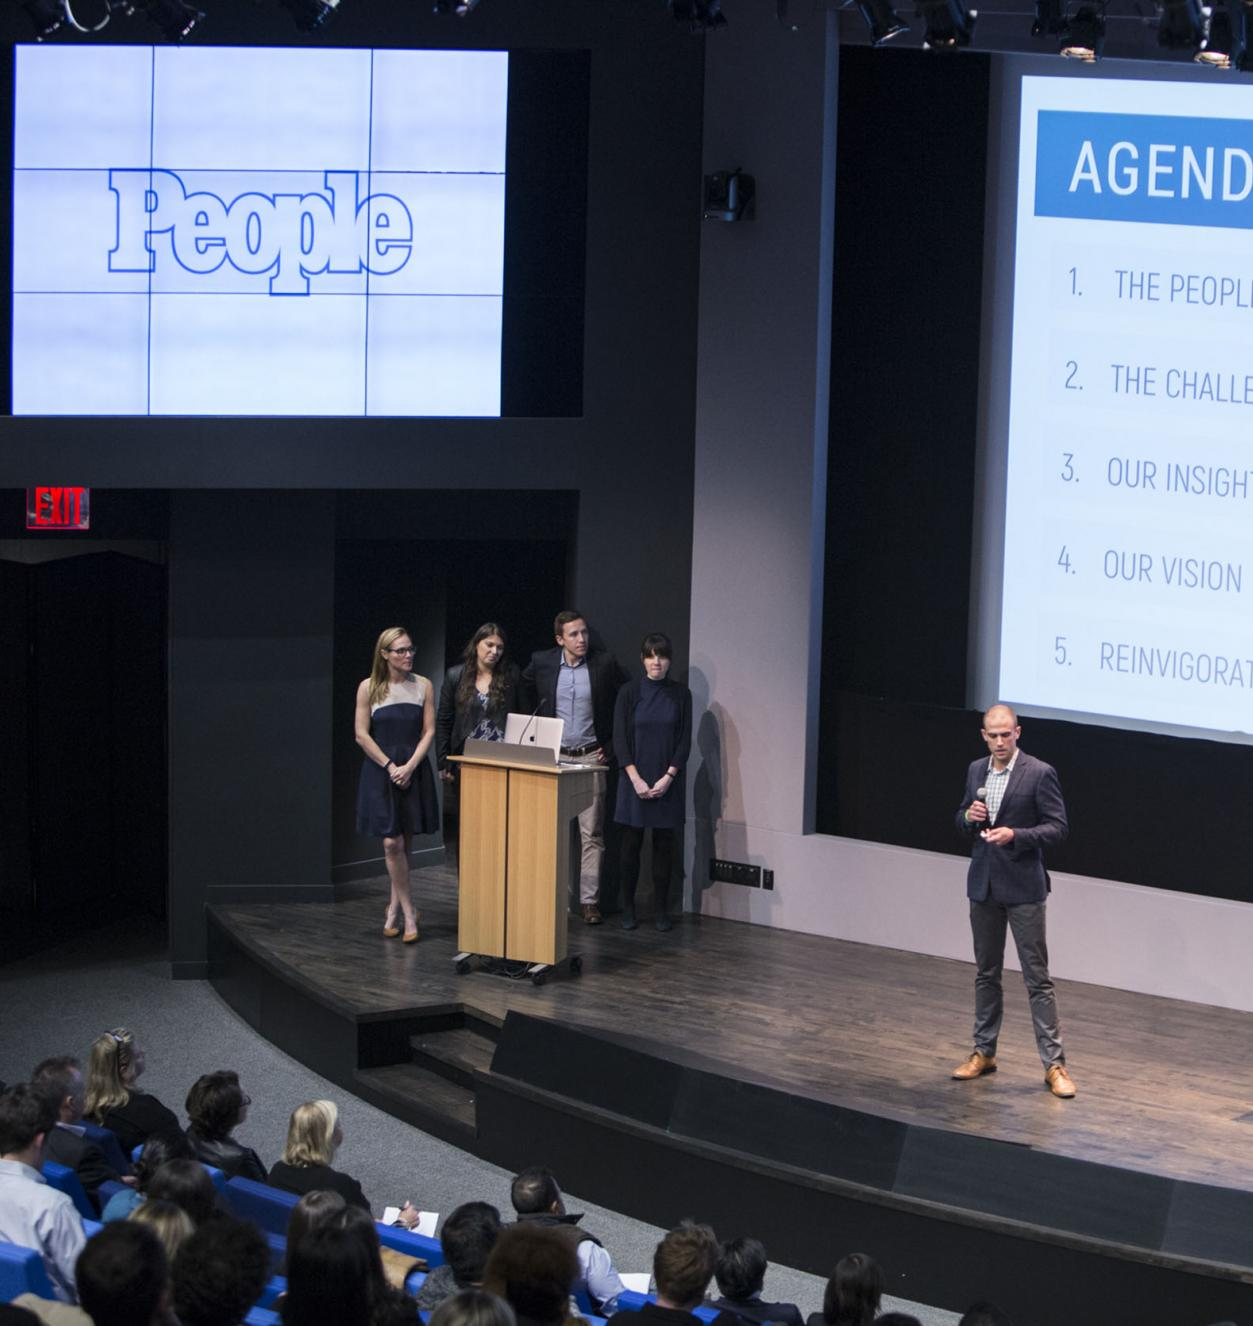 Four students presenting on a stage